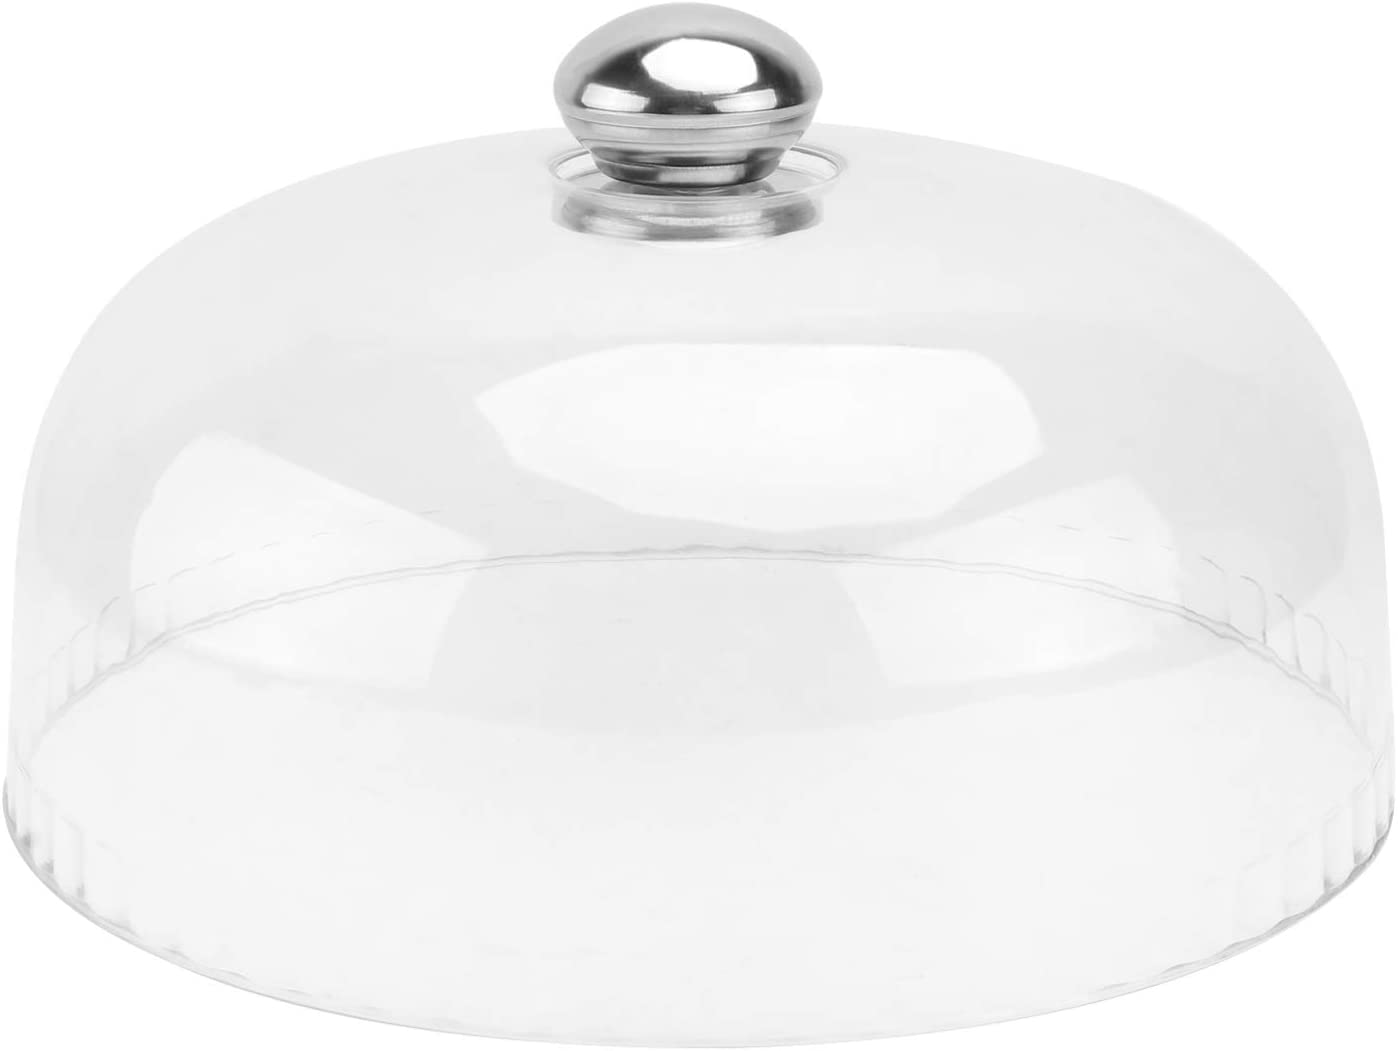 DOITOOL Cake Stand Cover Glass Desert Cloche Plastic Cake Cover Snack Tray Round Display Cake Plate Serving Platter Punch Bowl Food Tent 26x11cm